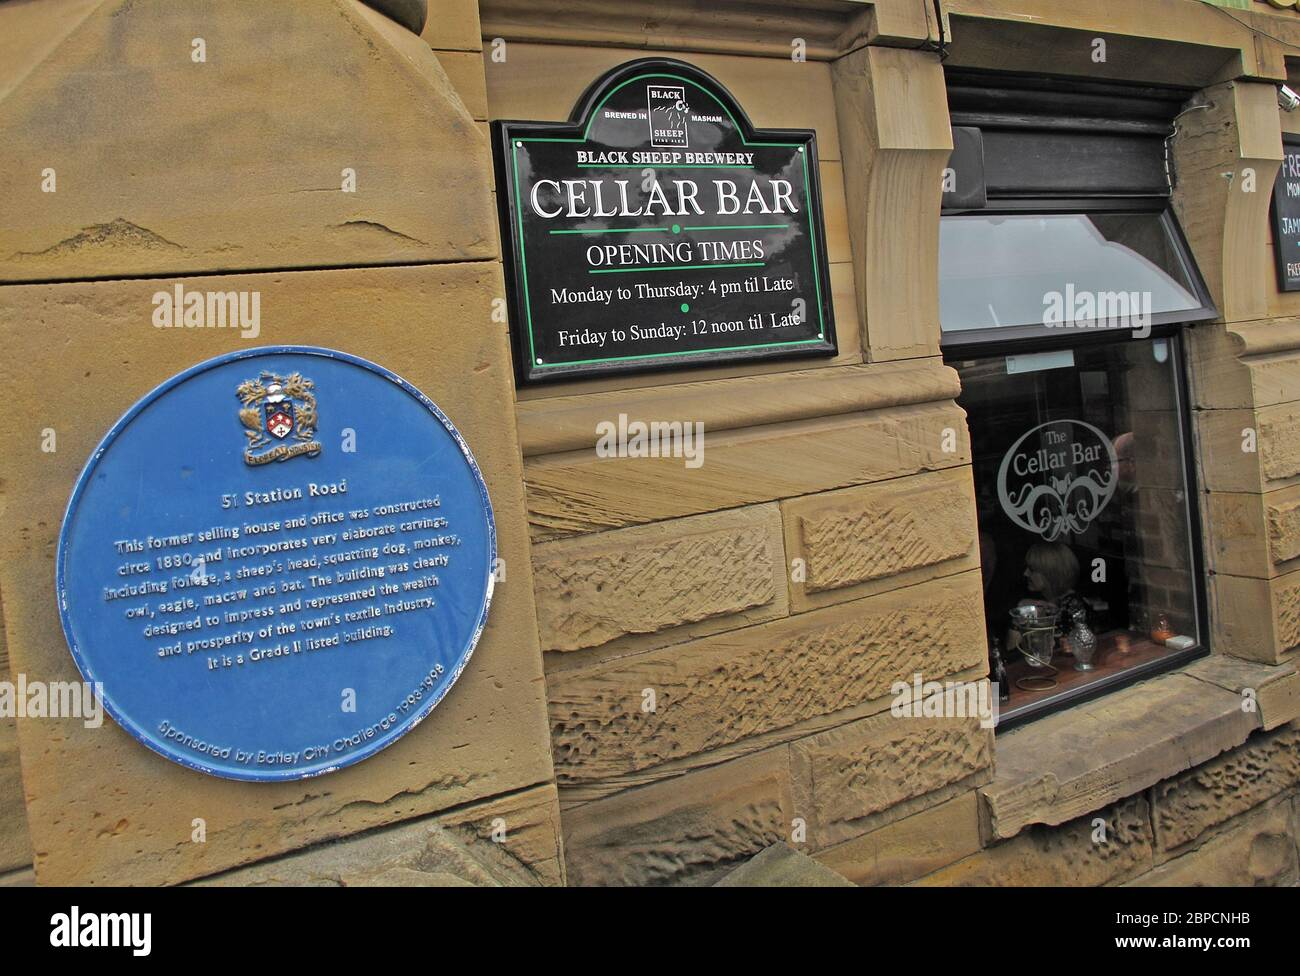 The Cellar Bar,51 Station Road, Batley, West Yorkshire, England, UK,on Transpennine Real Ale Trail Stock Photo